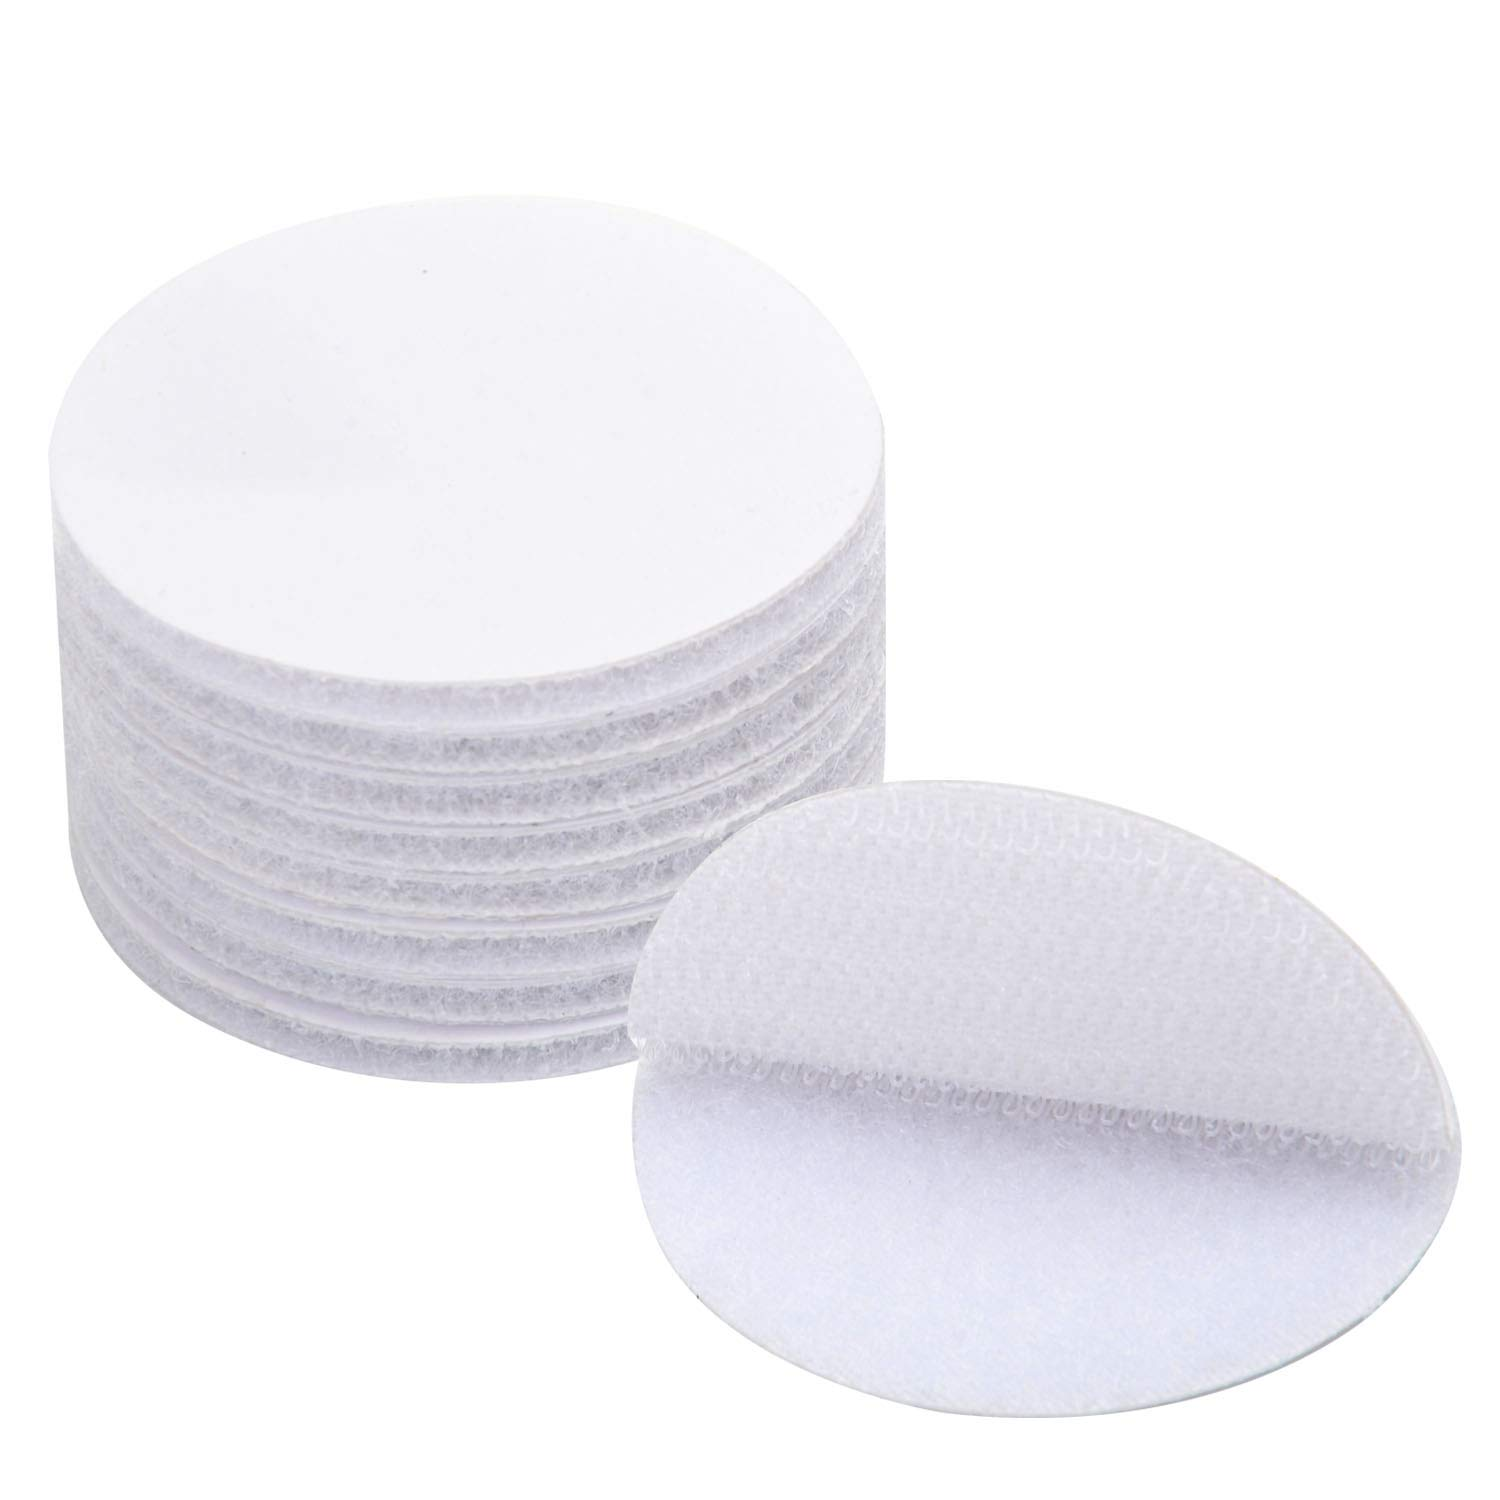 BRAVESHINE Sticky Back Tape - 12PCS Double Sided Hook Loop Dots - Self Adhesive Wall Mounting Coins - Industrial Strength Rug Carpet Pad for Home Couch Cushions Stair Treads - Round 1.5 inch, White